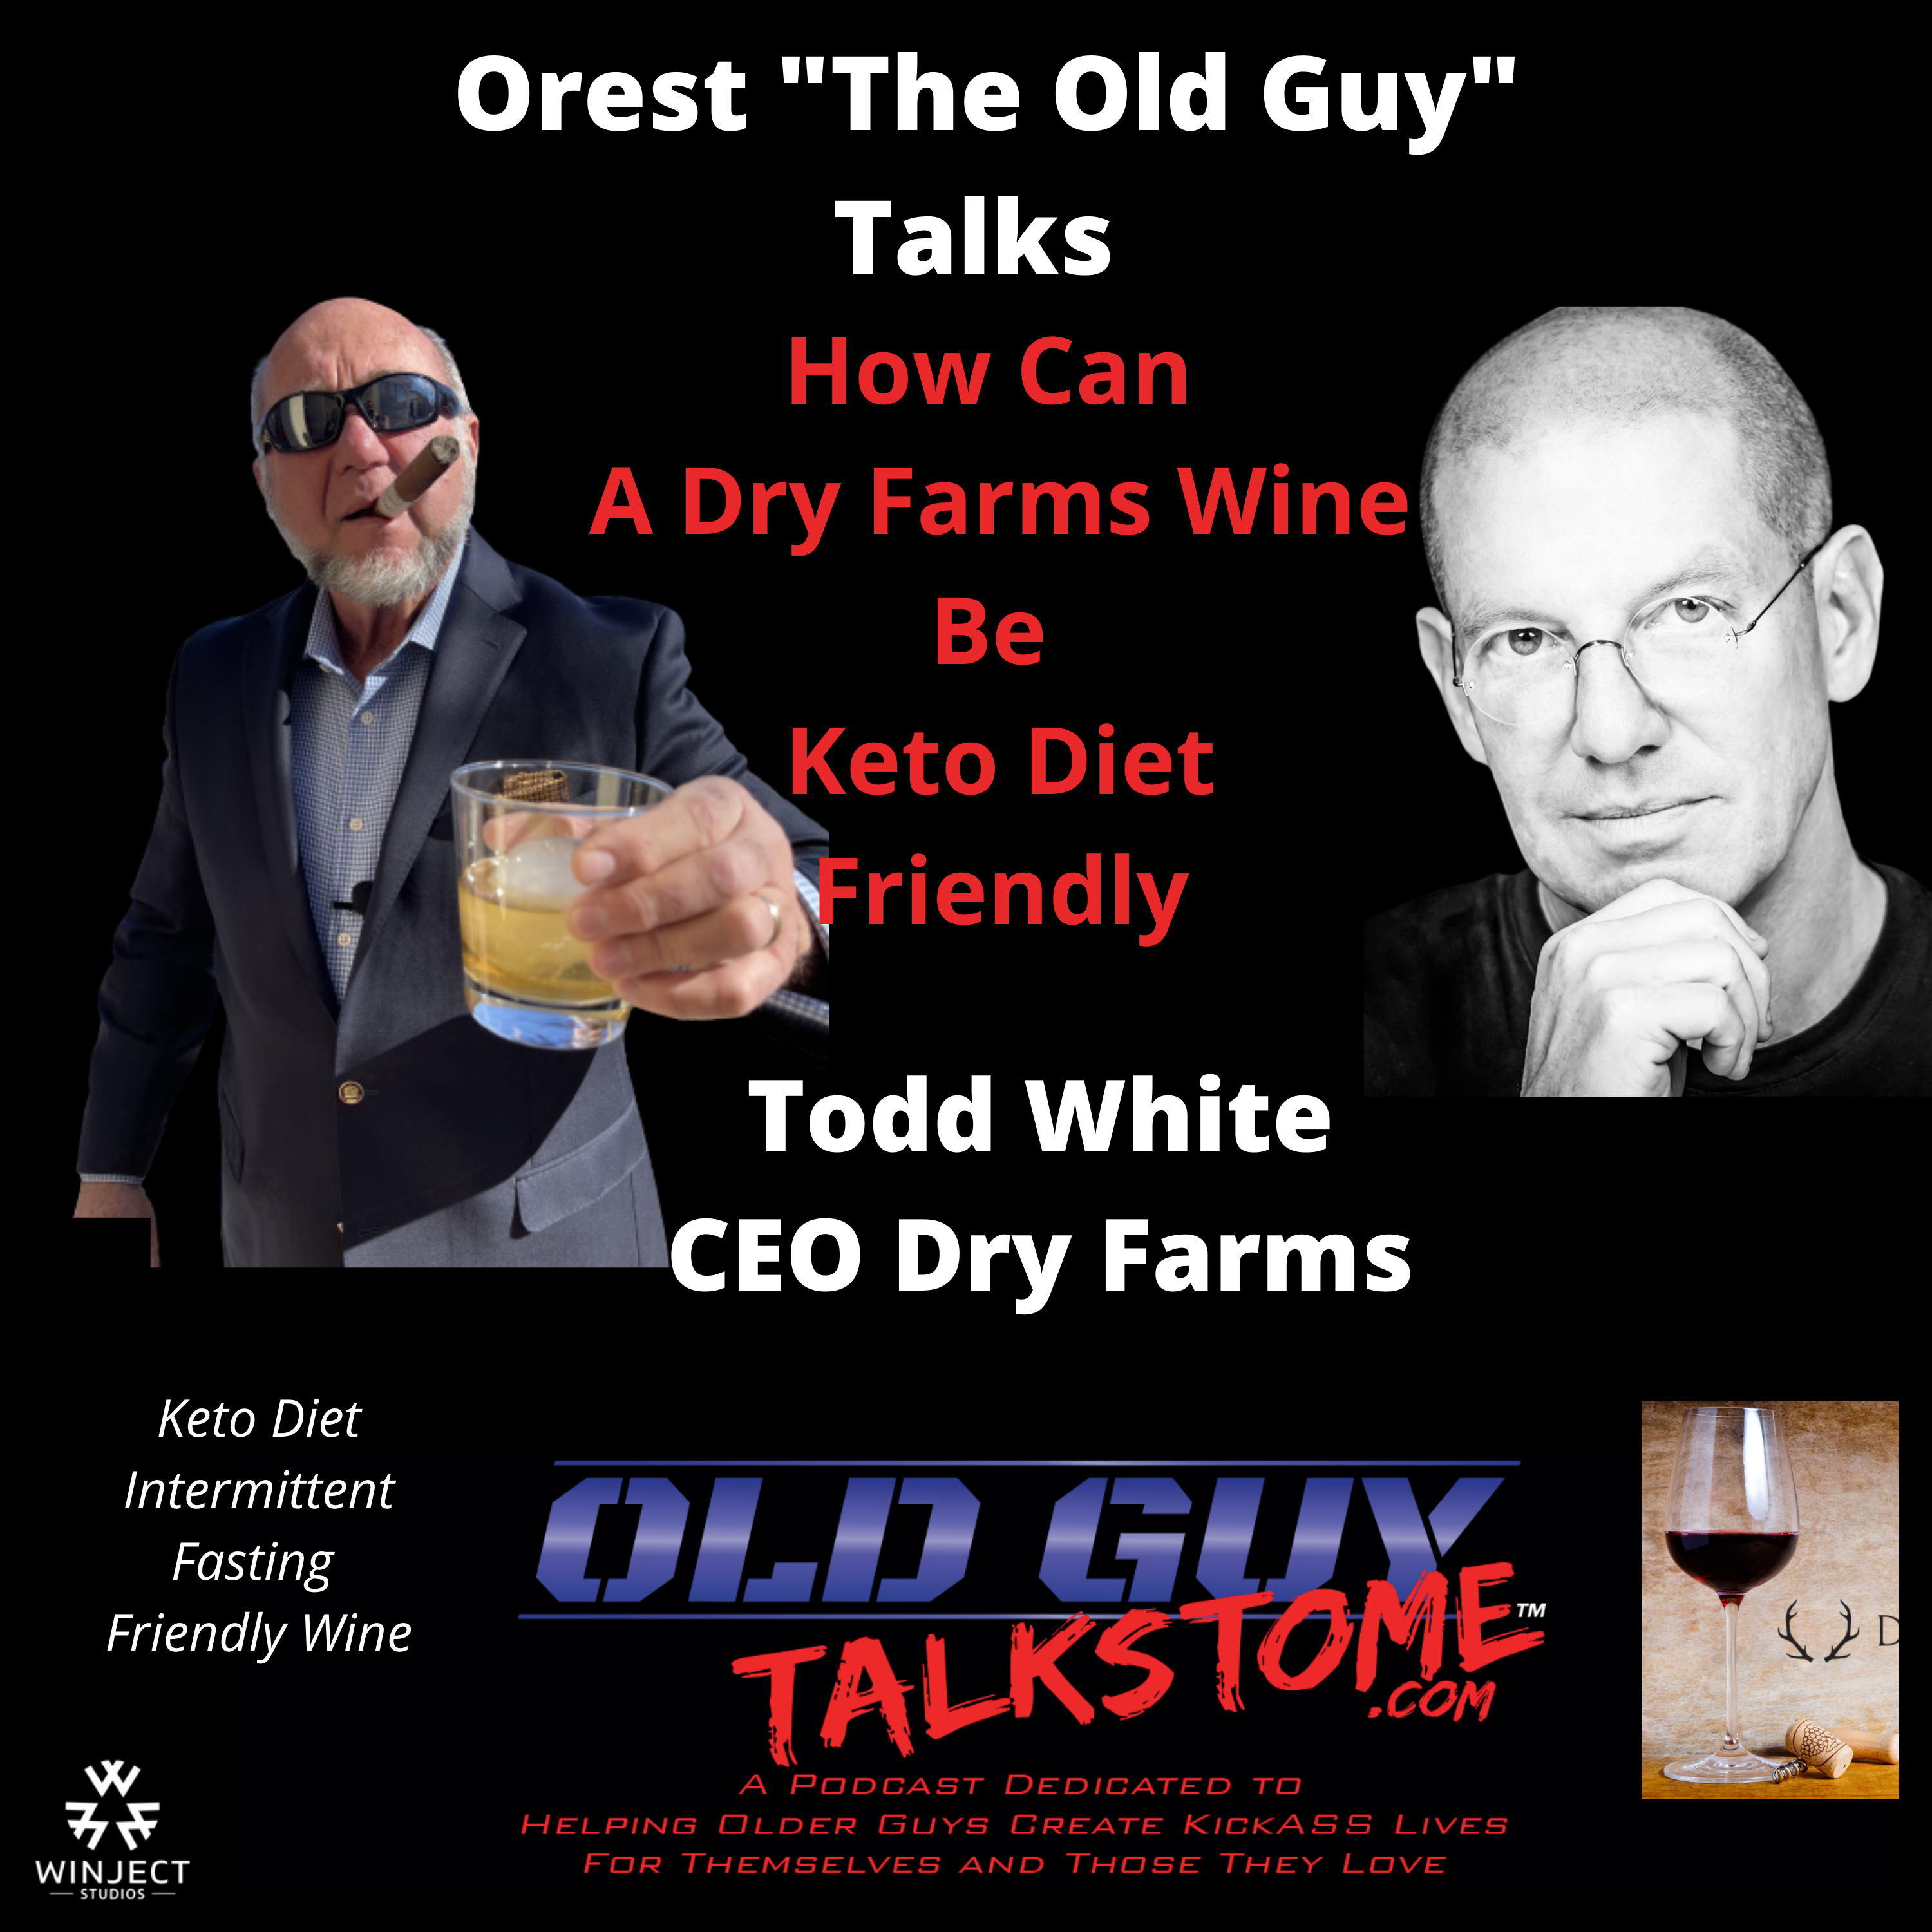 OldGuyTalksToMe - 75.  How Can A Dry Farm's Wine Be Keto Diet Friendly